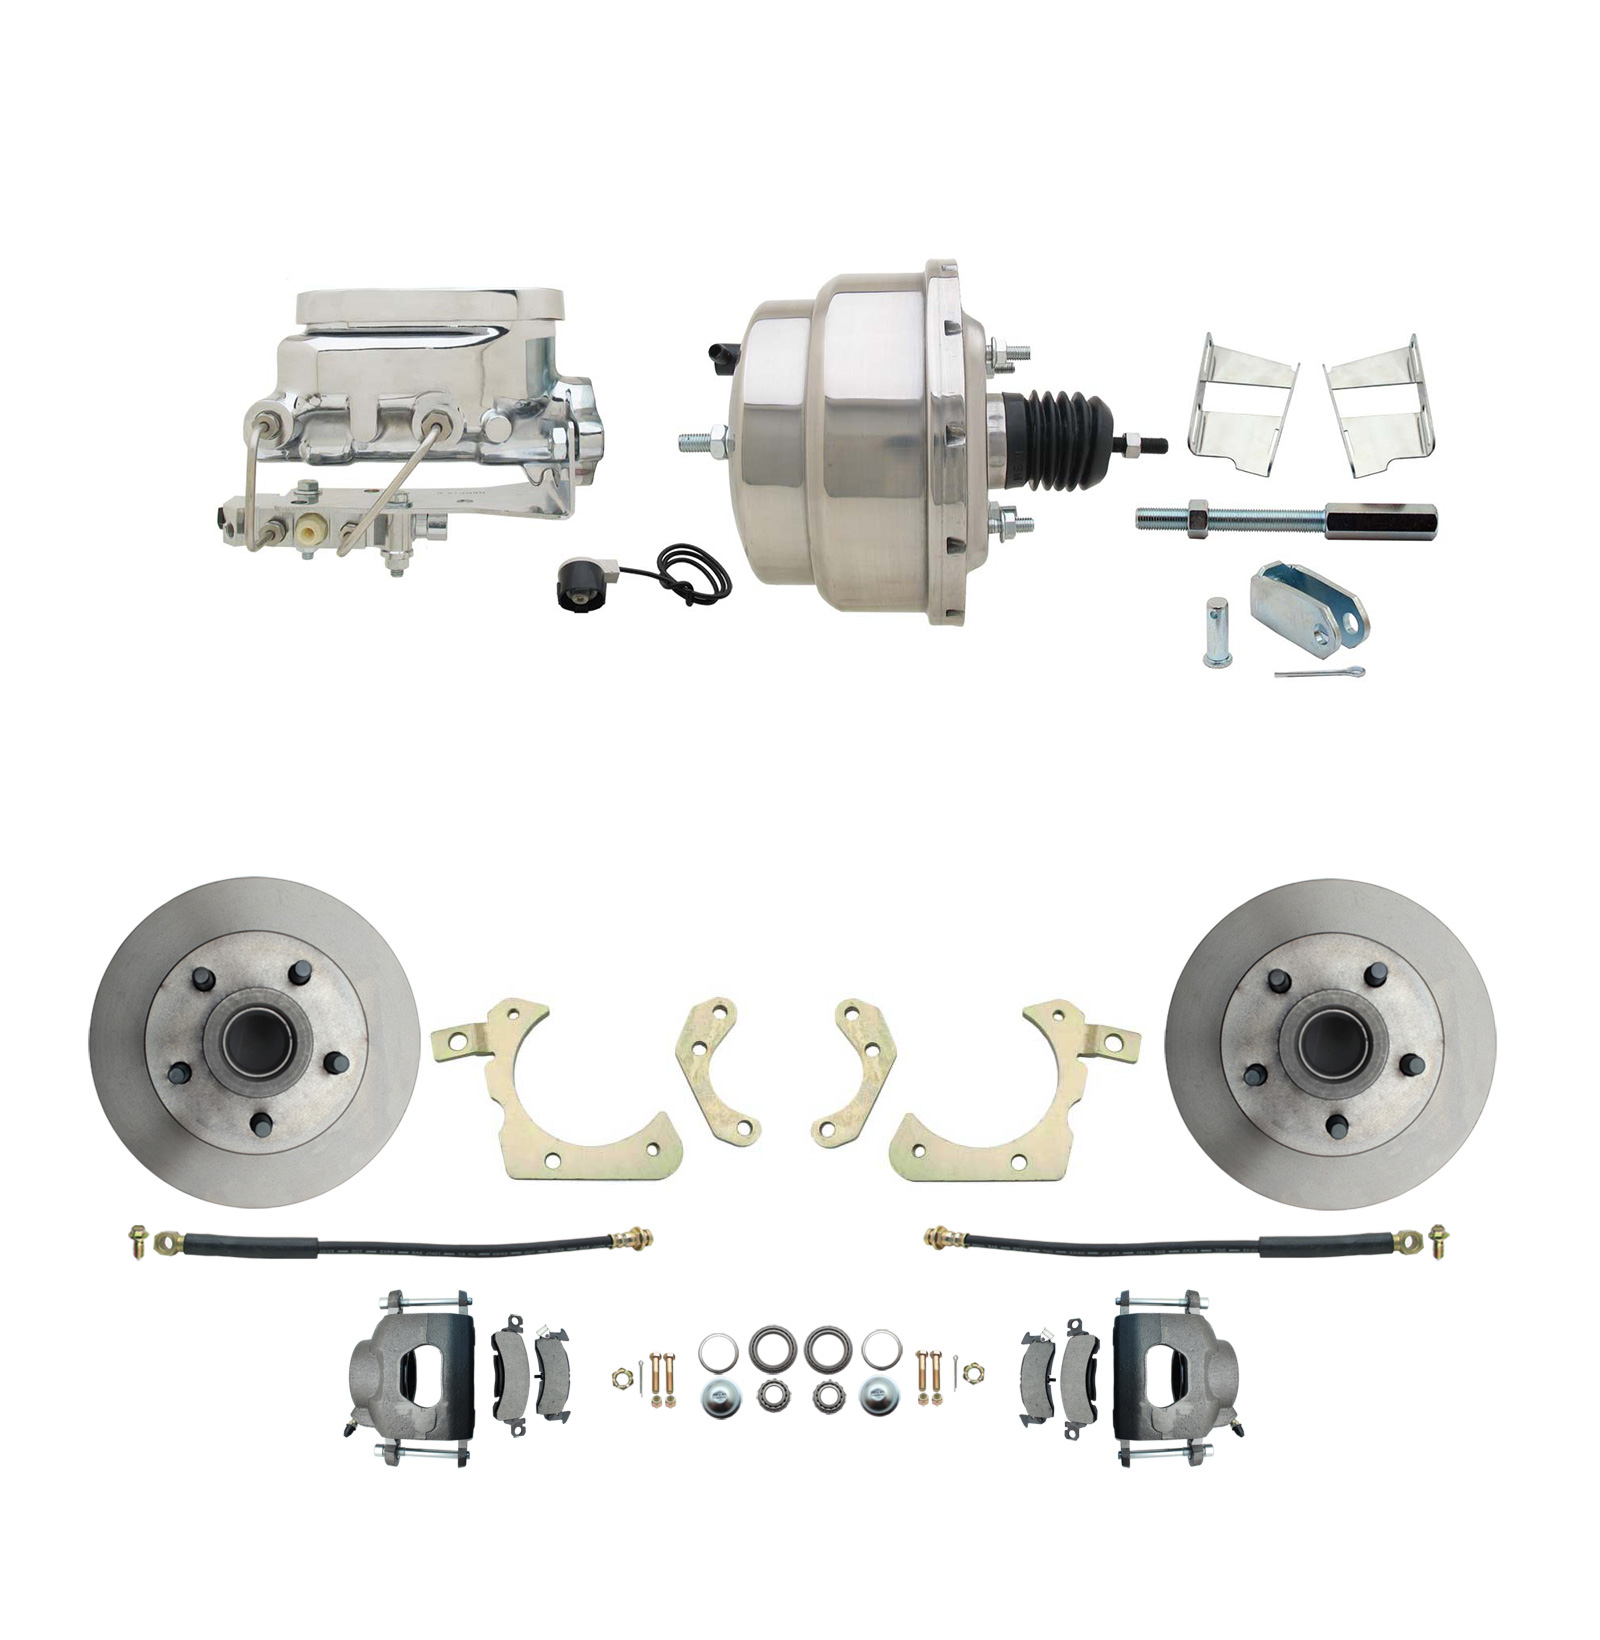 1959-1964 GM Full Size Front Disc Brake Kit (Impala, Bel Air, Biscayne) & 8 Dual Chrome Booster Conversion Kit W/ Flat Top Chrome Master Cylinder Bottom Mount Disc/ Drum Proportioning Valve Kit